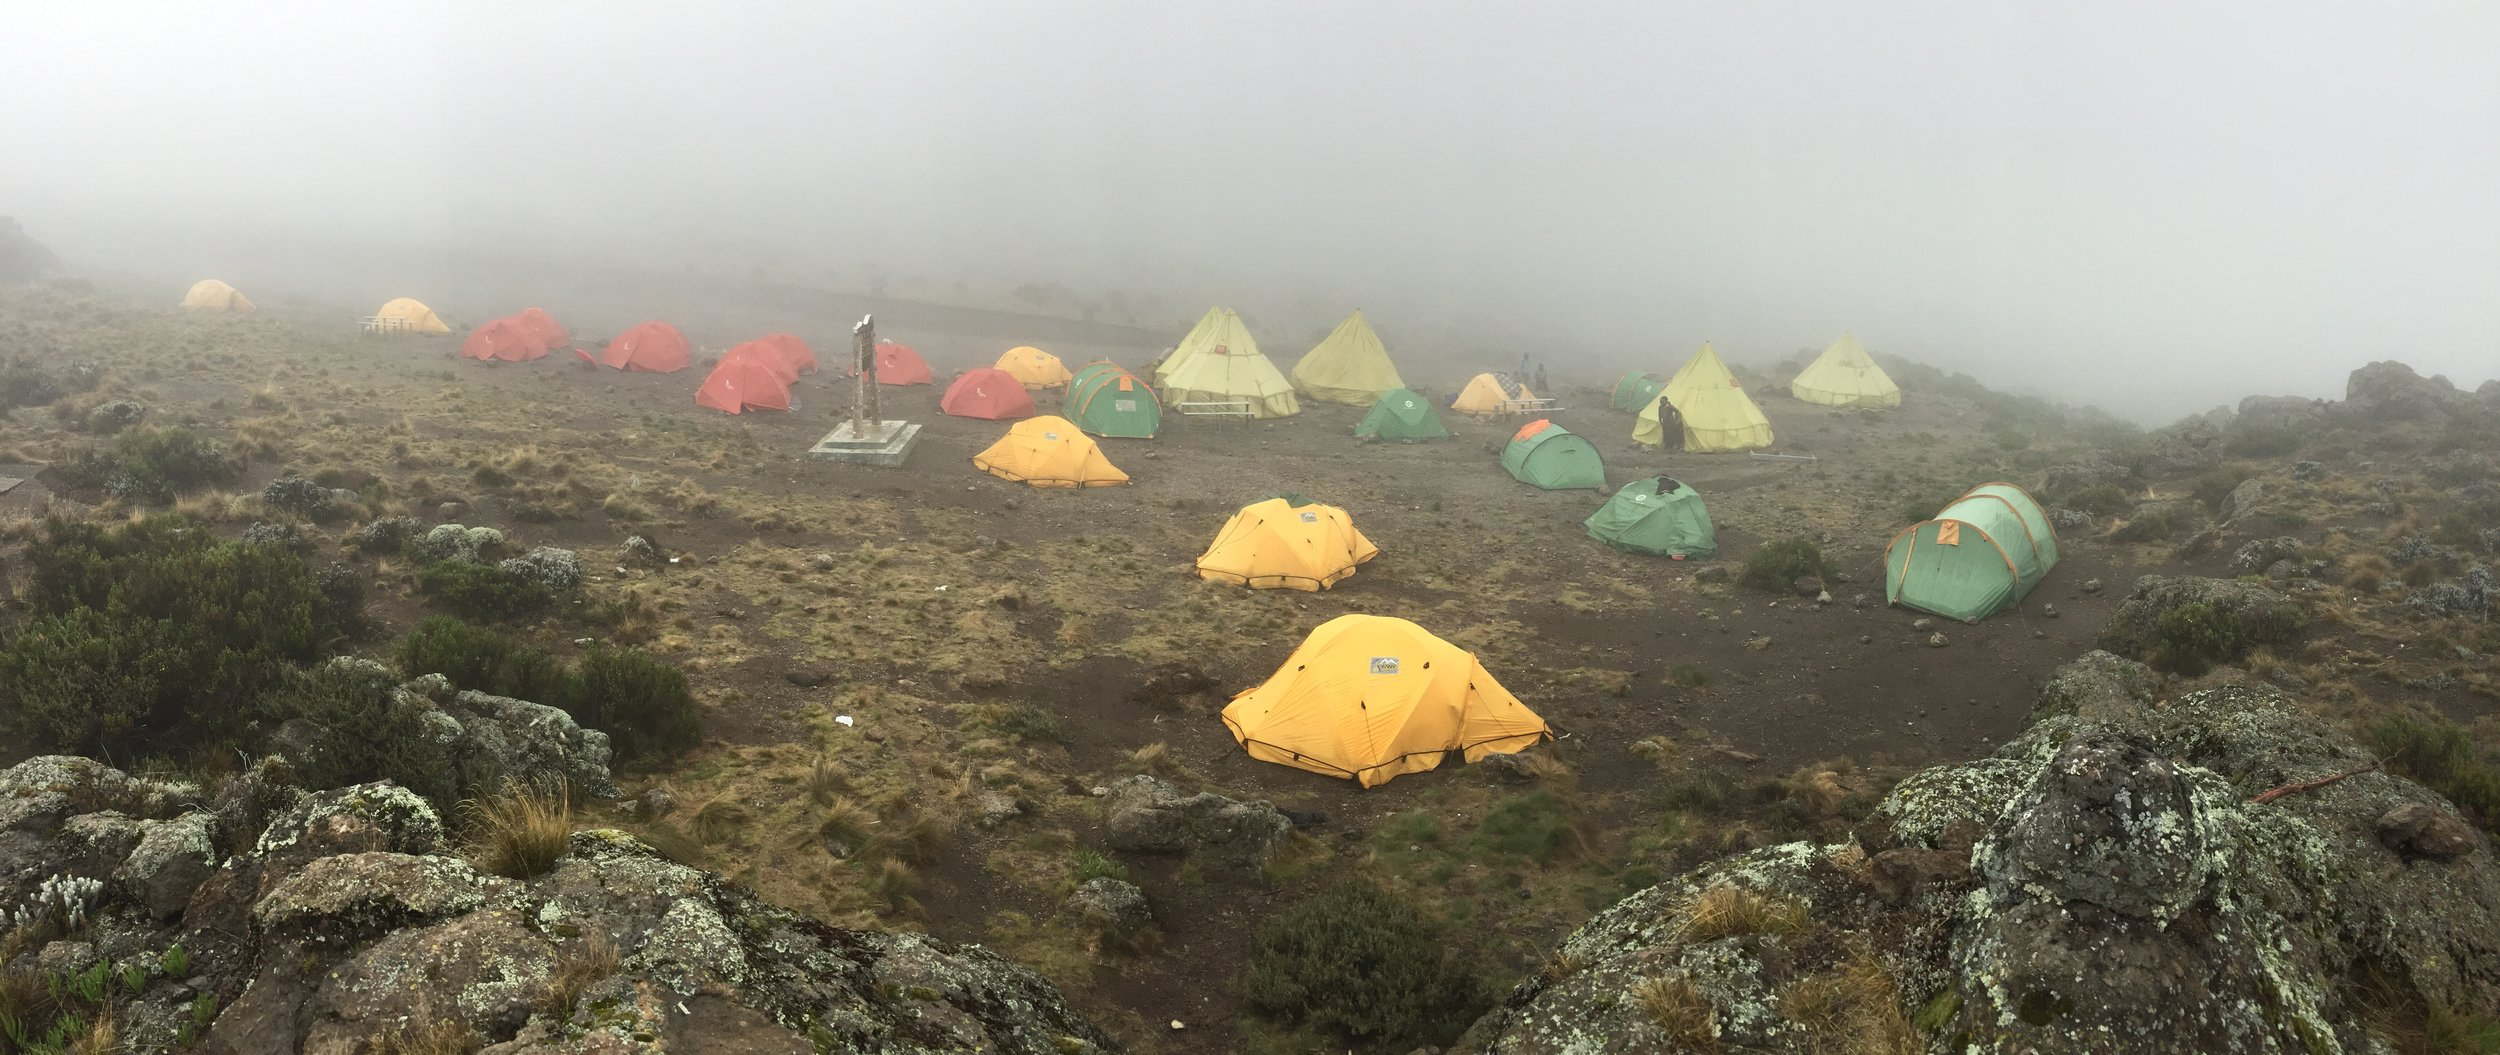 Our second campsite: higher up in the tundra and clouds.